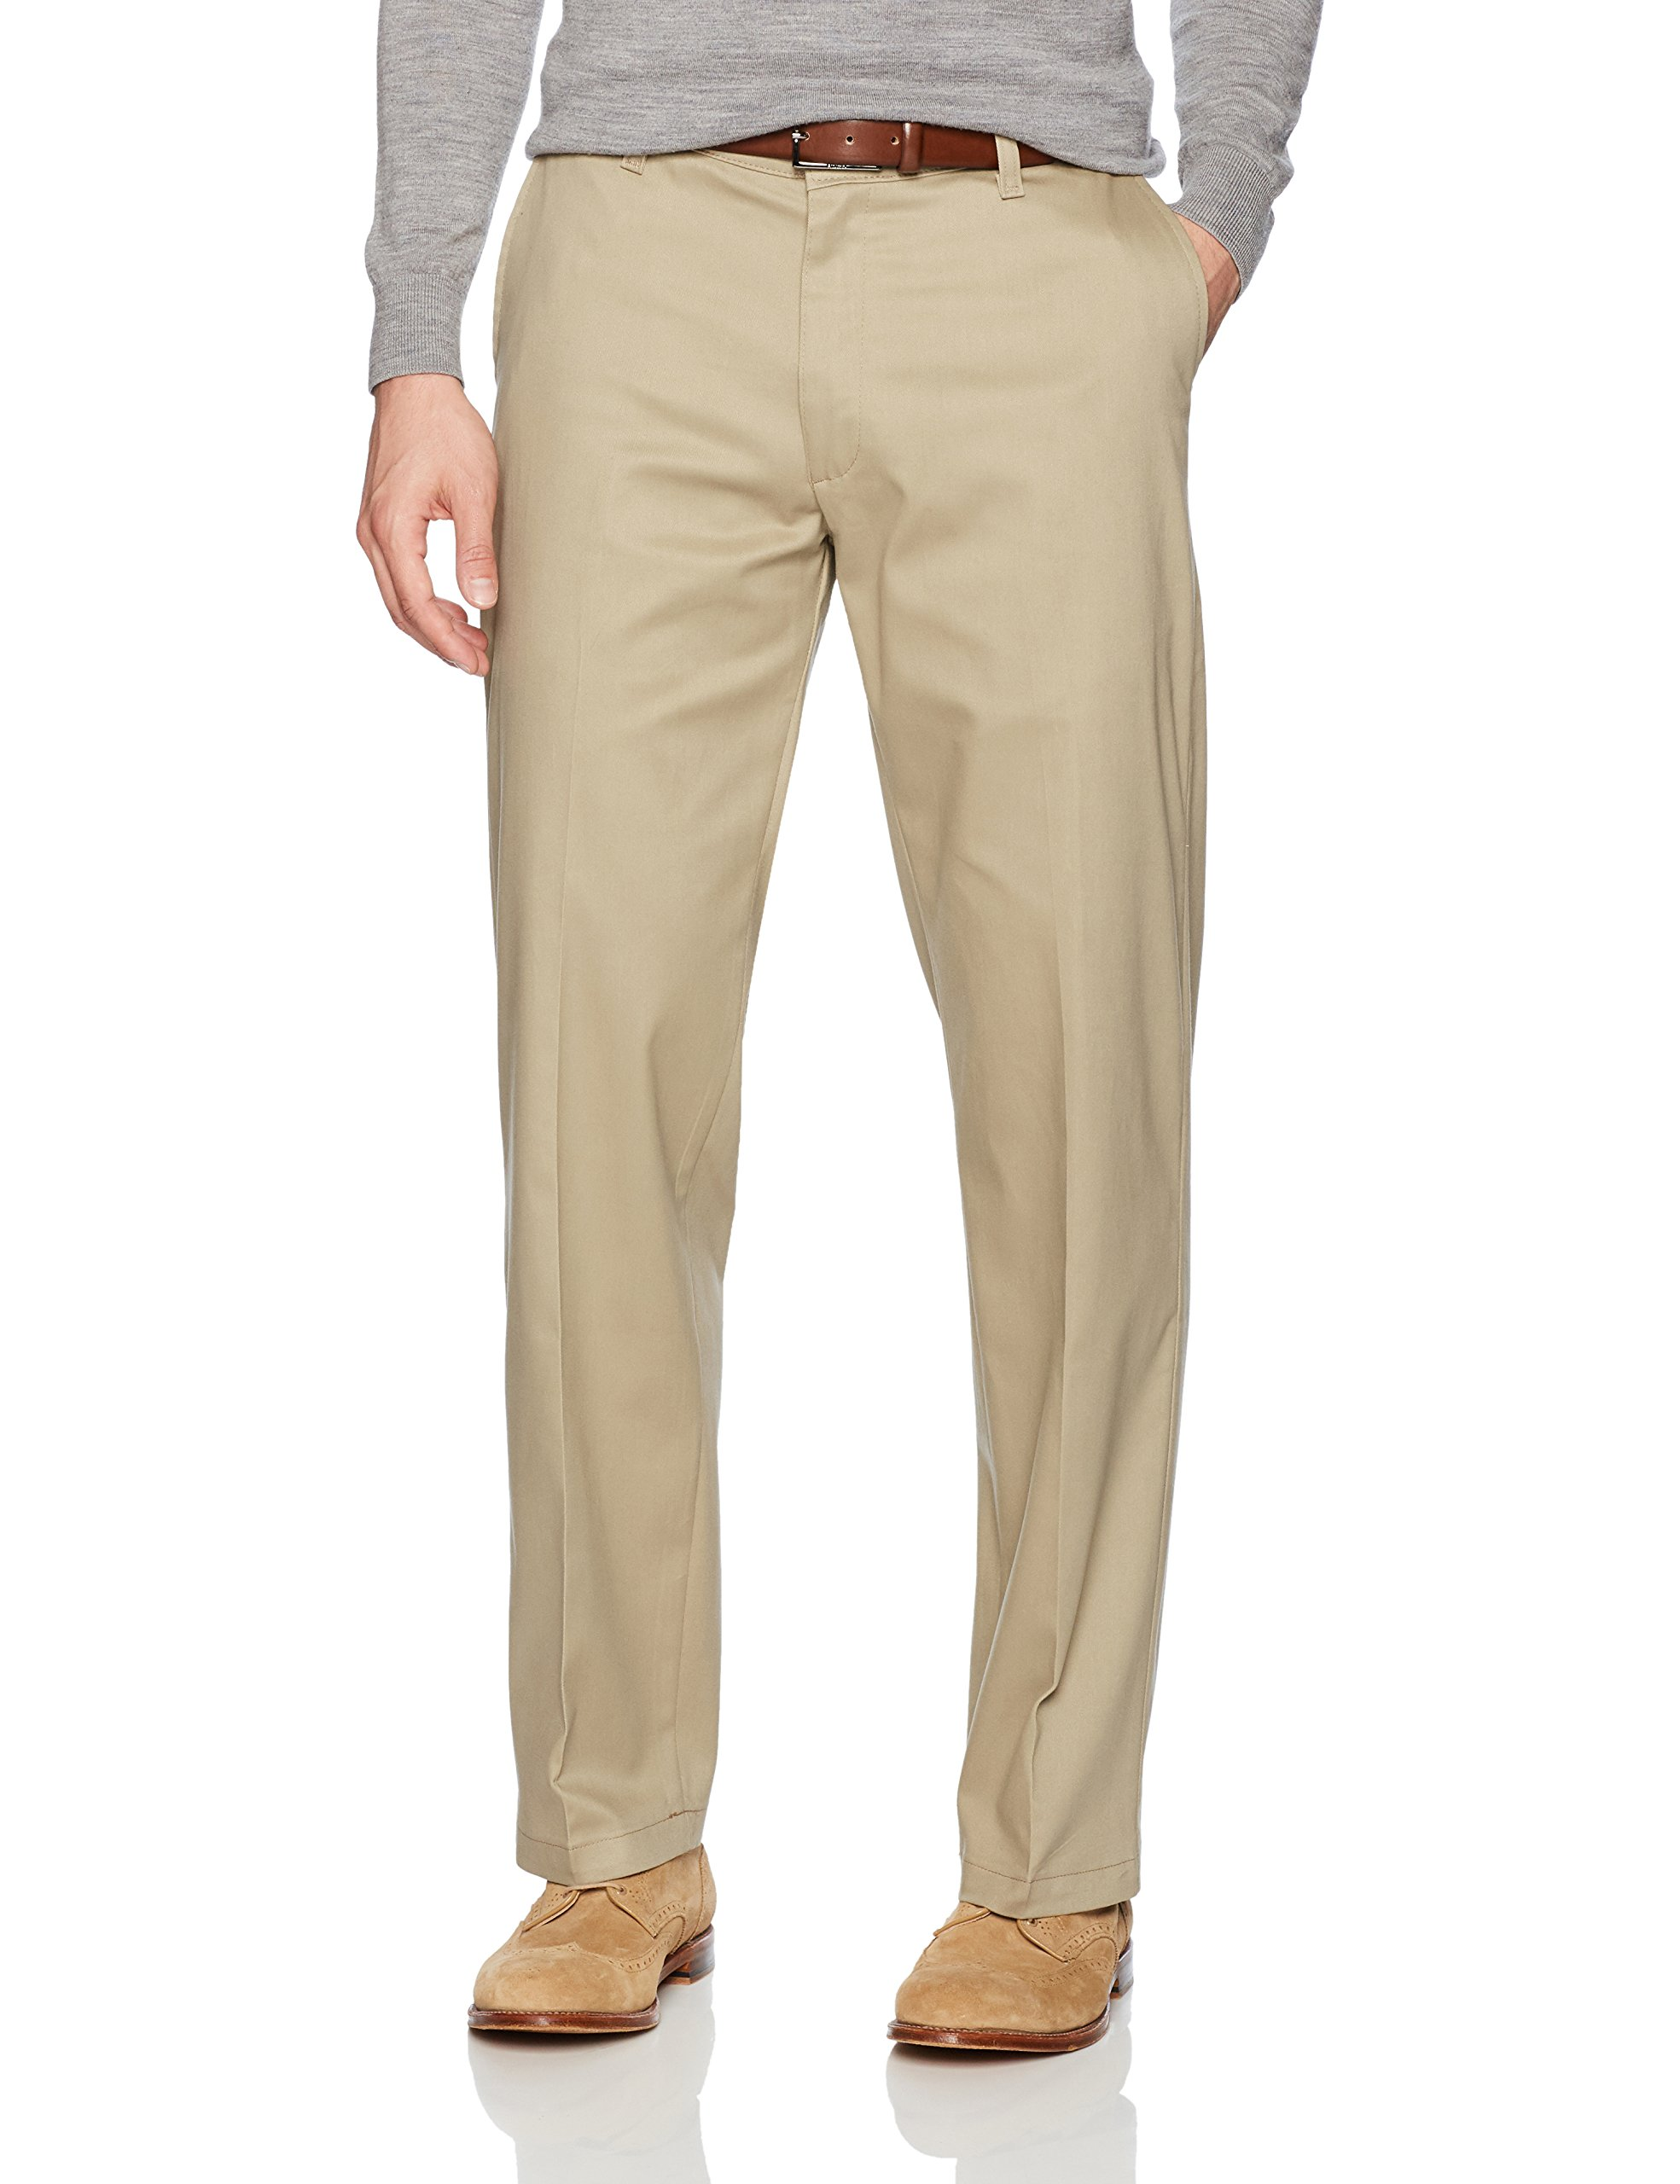 LEE Men's Total Freedom Stretch Relaxed Fit Flat Front Pant, Khaki, 36W x 30L by LEE